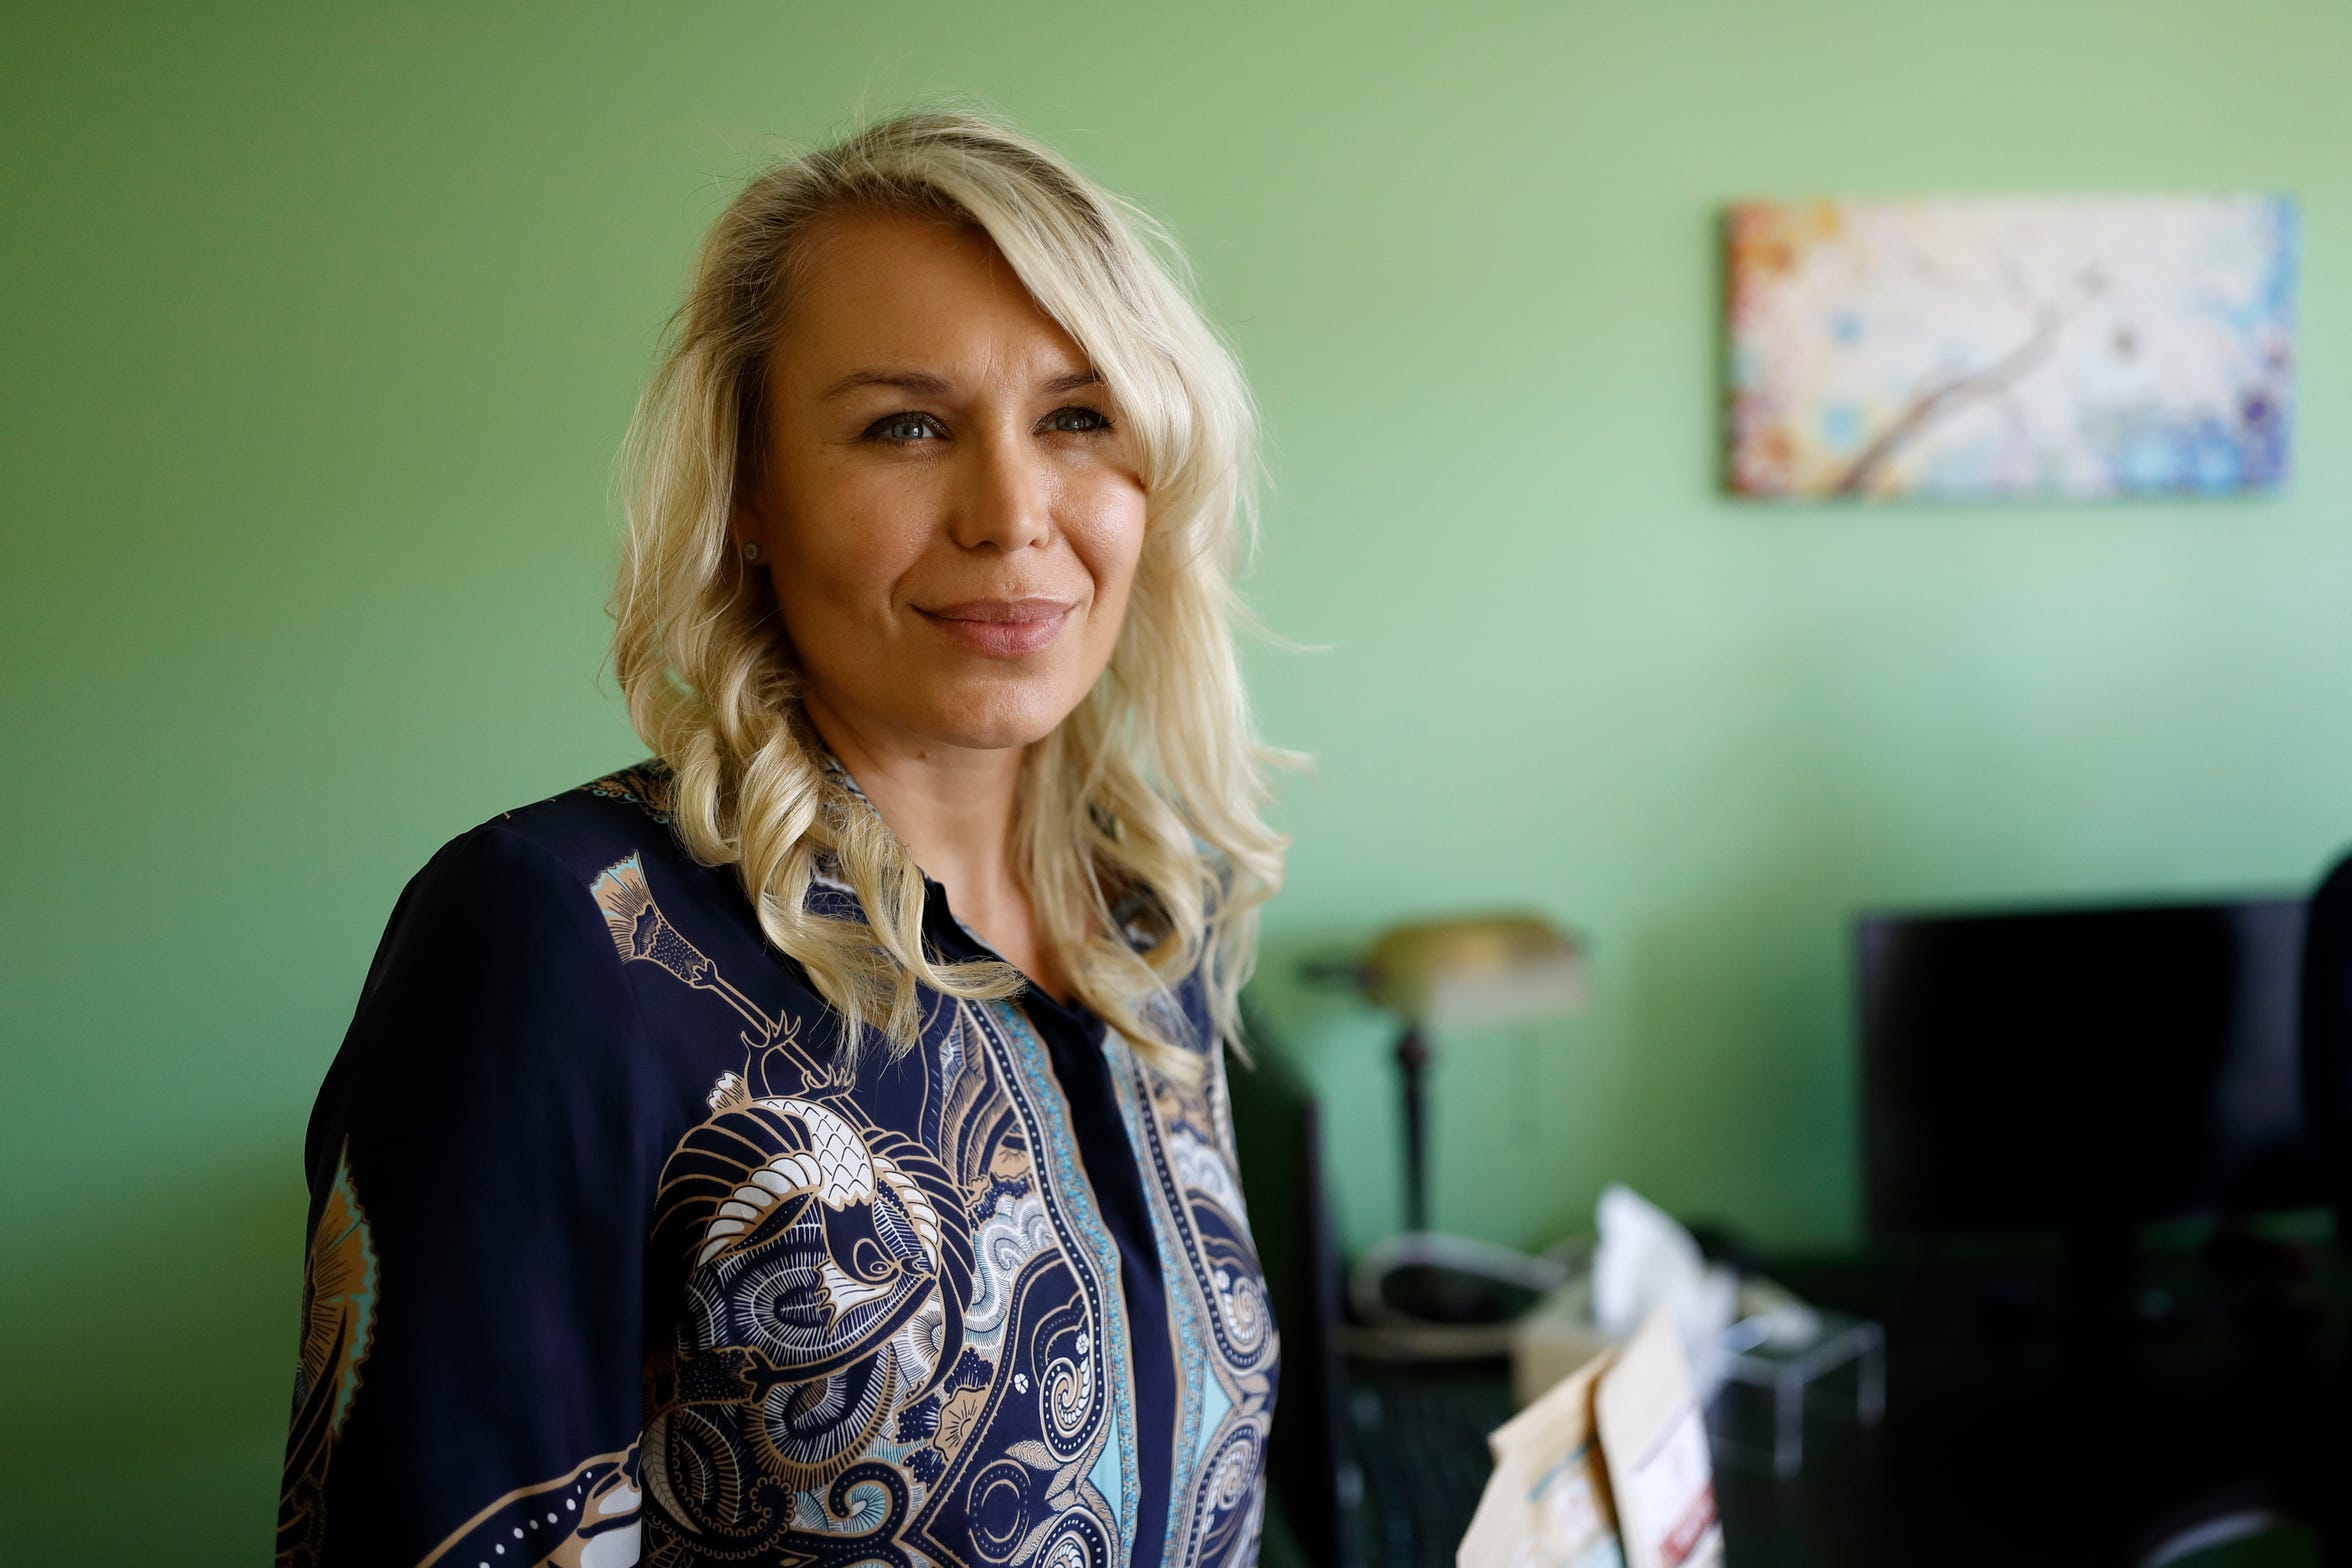 Katarina Maloney is pictured in her company's offices in Carlsbad, Calif., on Aug. 27, 2019. Maloney is the CEO of Mathco Health Corporation, which sells products made with the cannabis extract CBD.